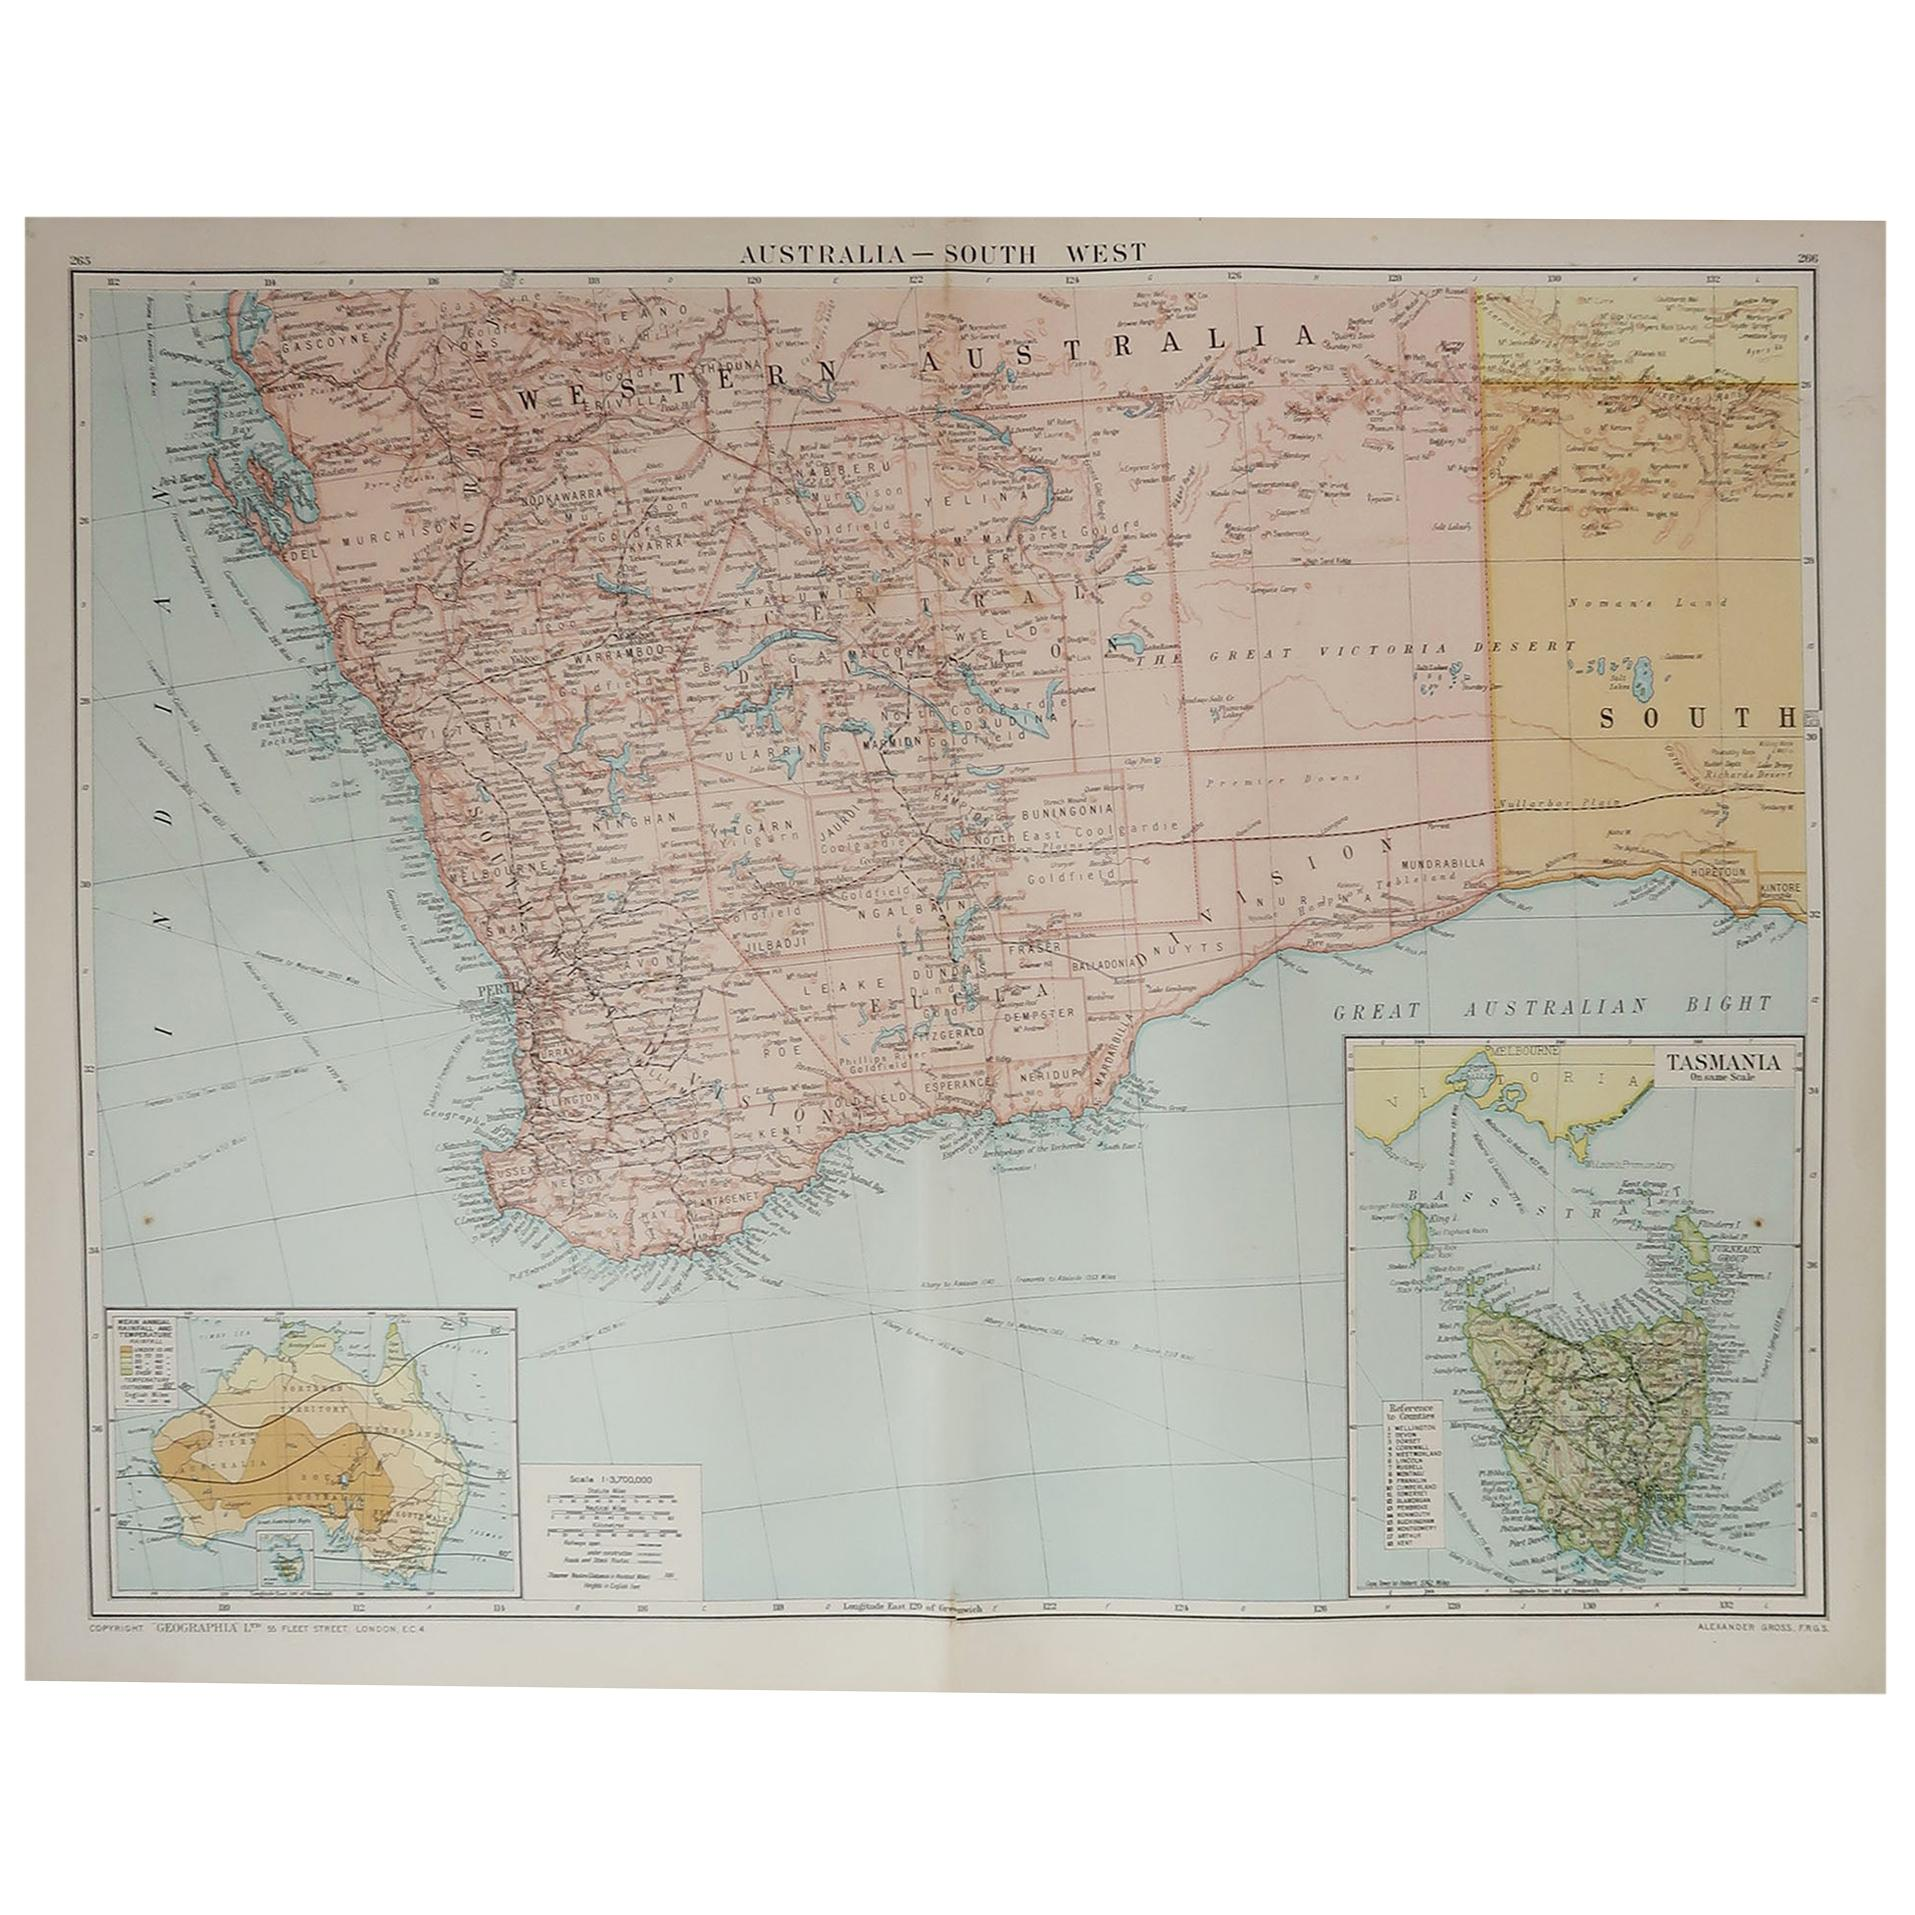 Large Original Vintage Map of Western Australia, circa 1920